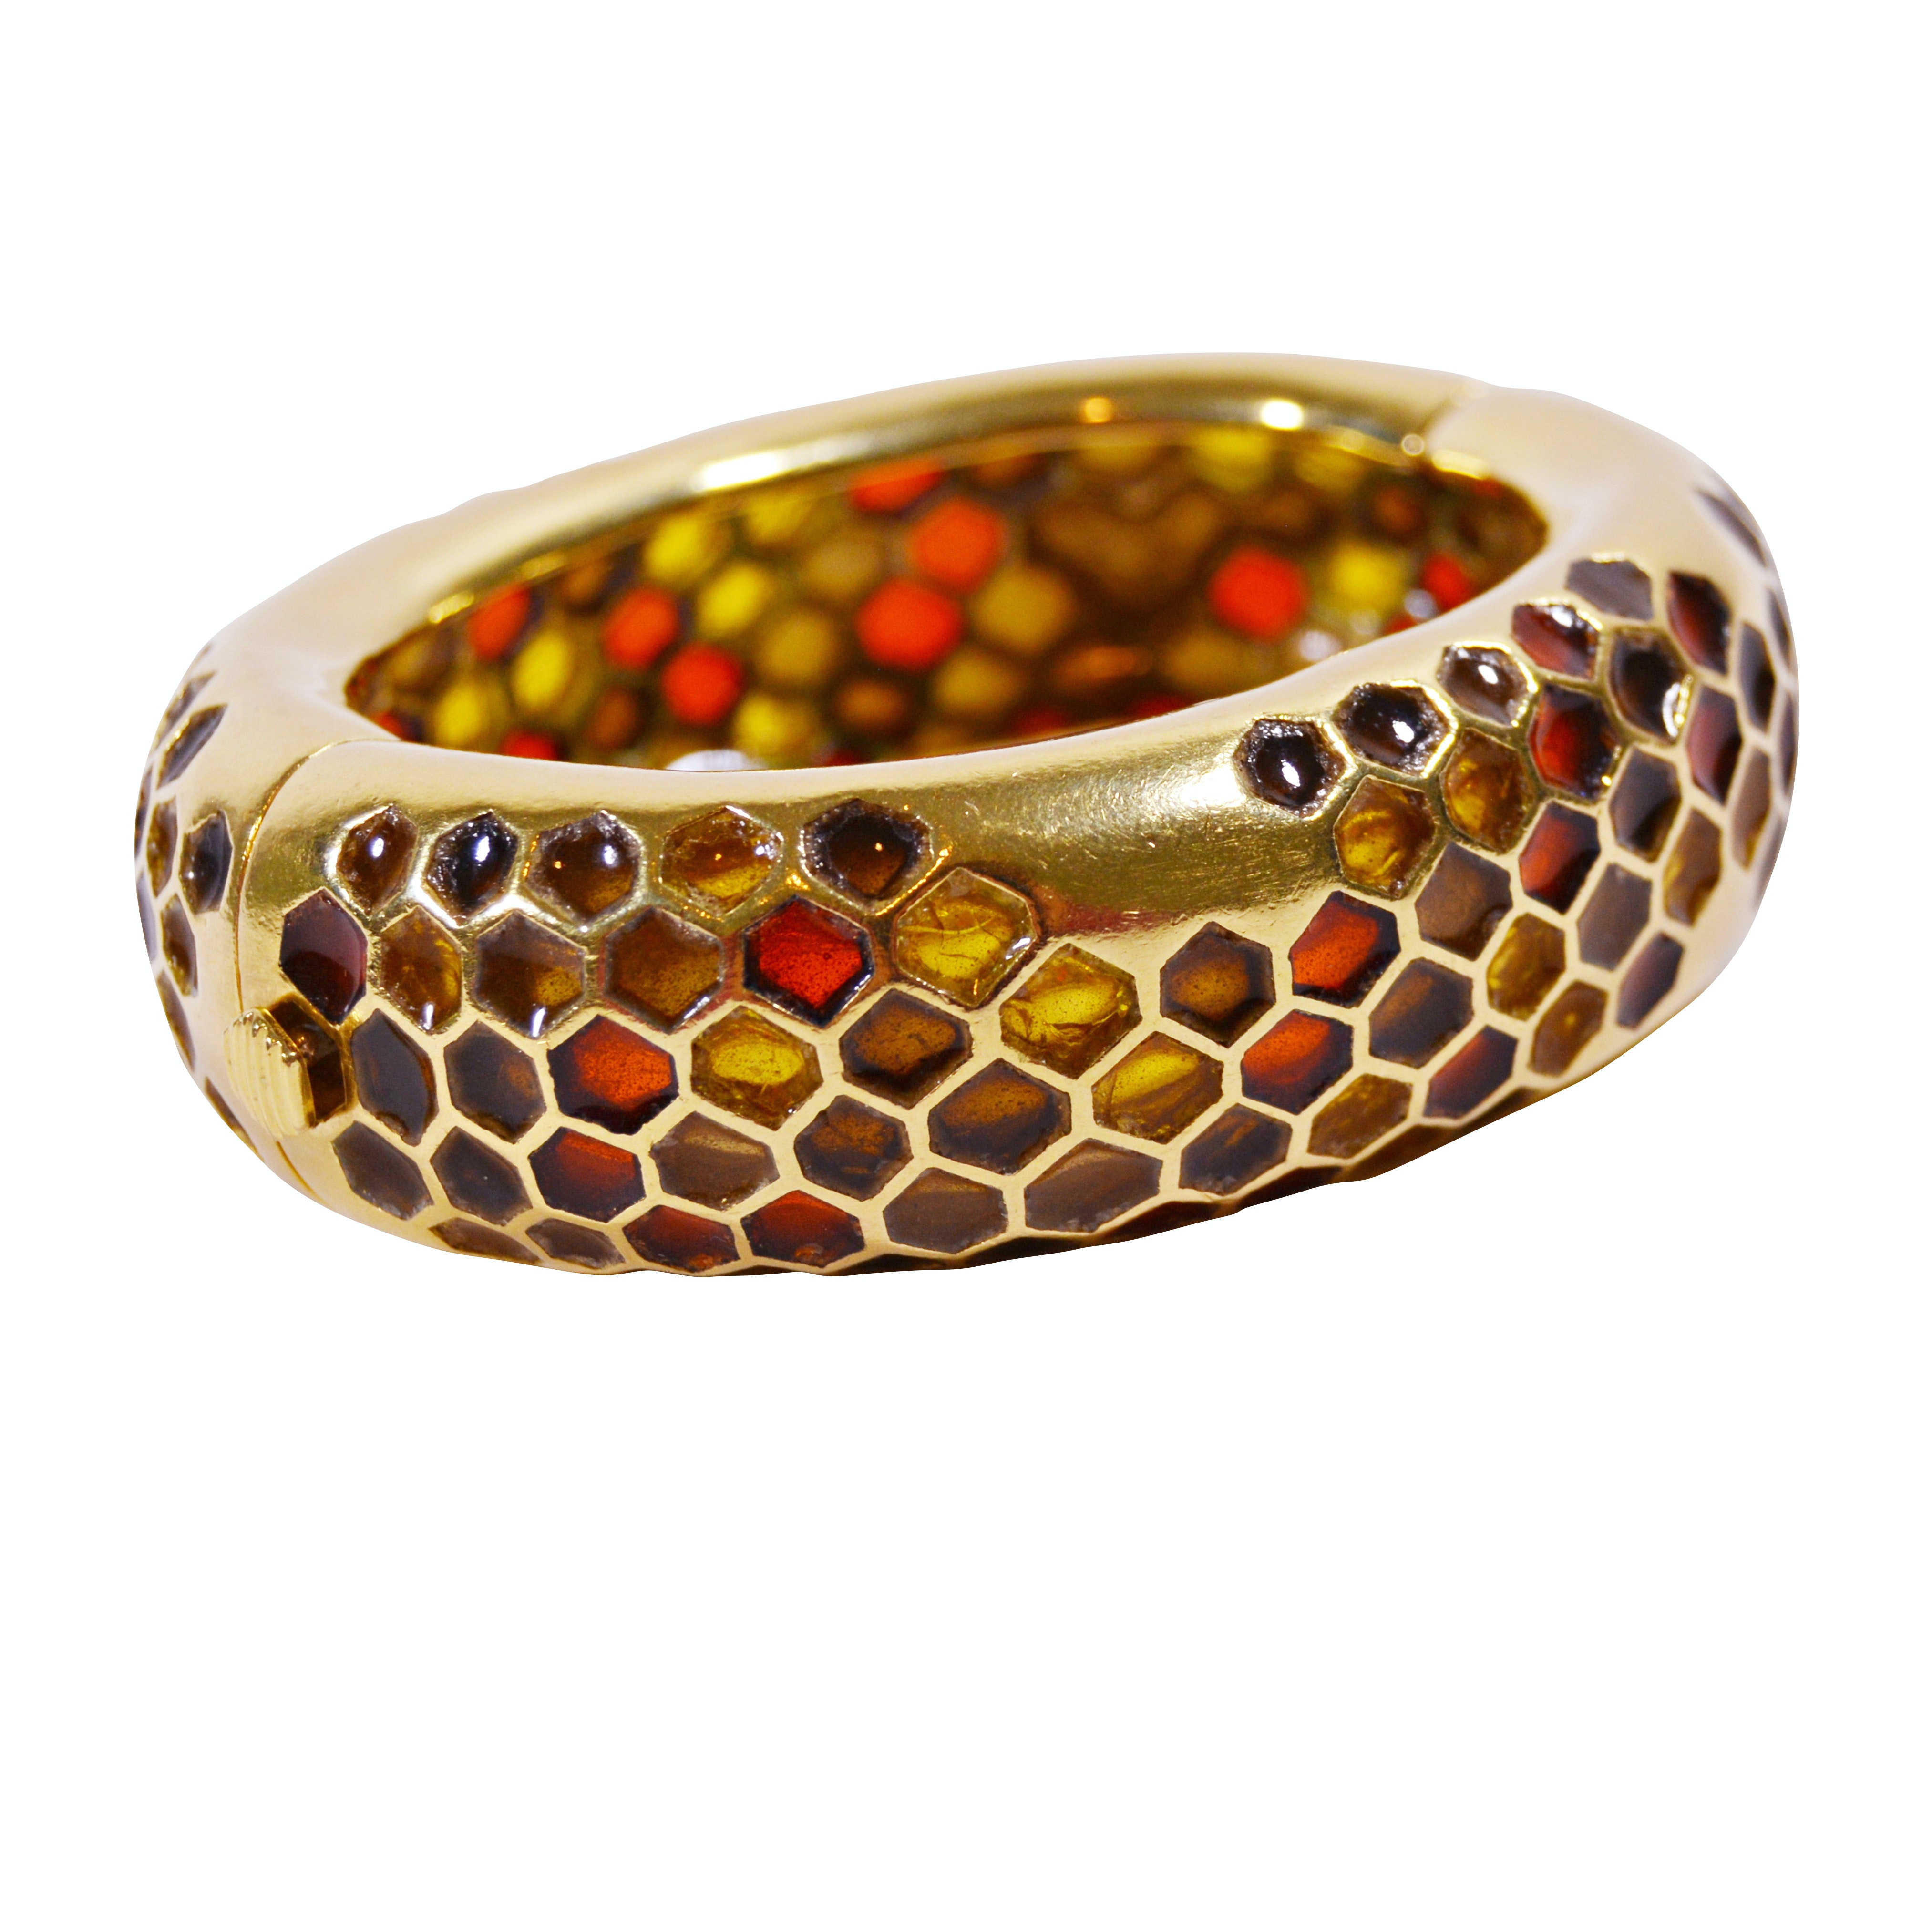 Angela Cummings 18K Gold Honeycomb Plique-à-jour Bangle